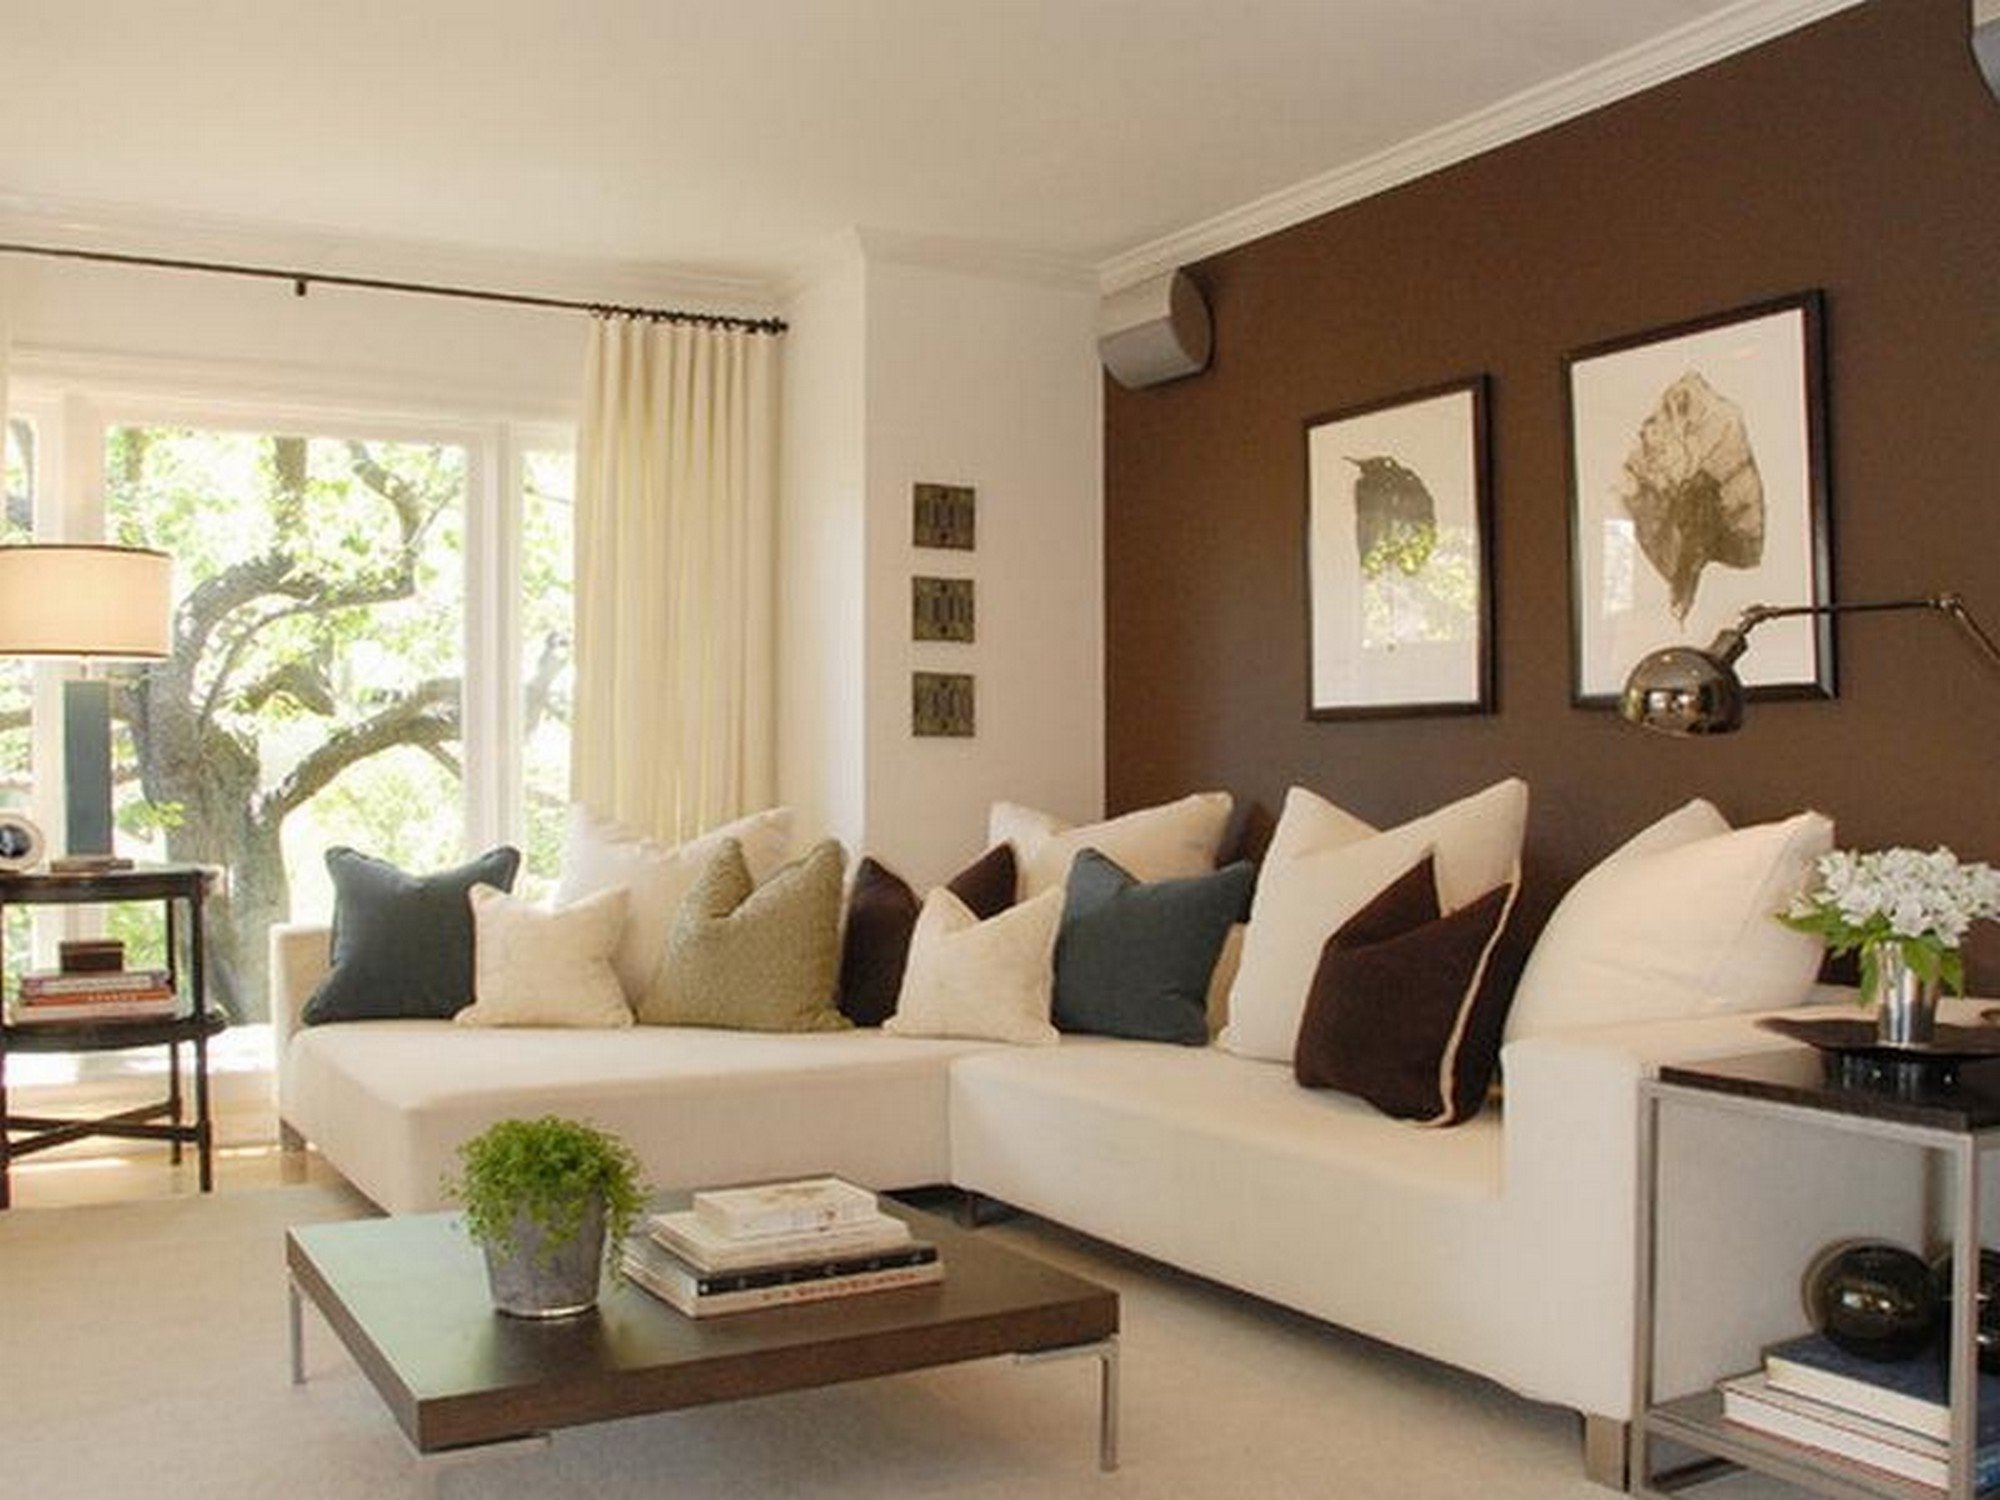 10 Spectacular Living Room Paint Color Ideas living room paint colors small color ideas schemes wall accent for 1 2020